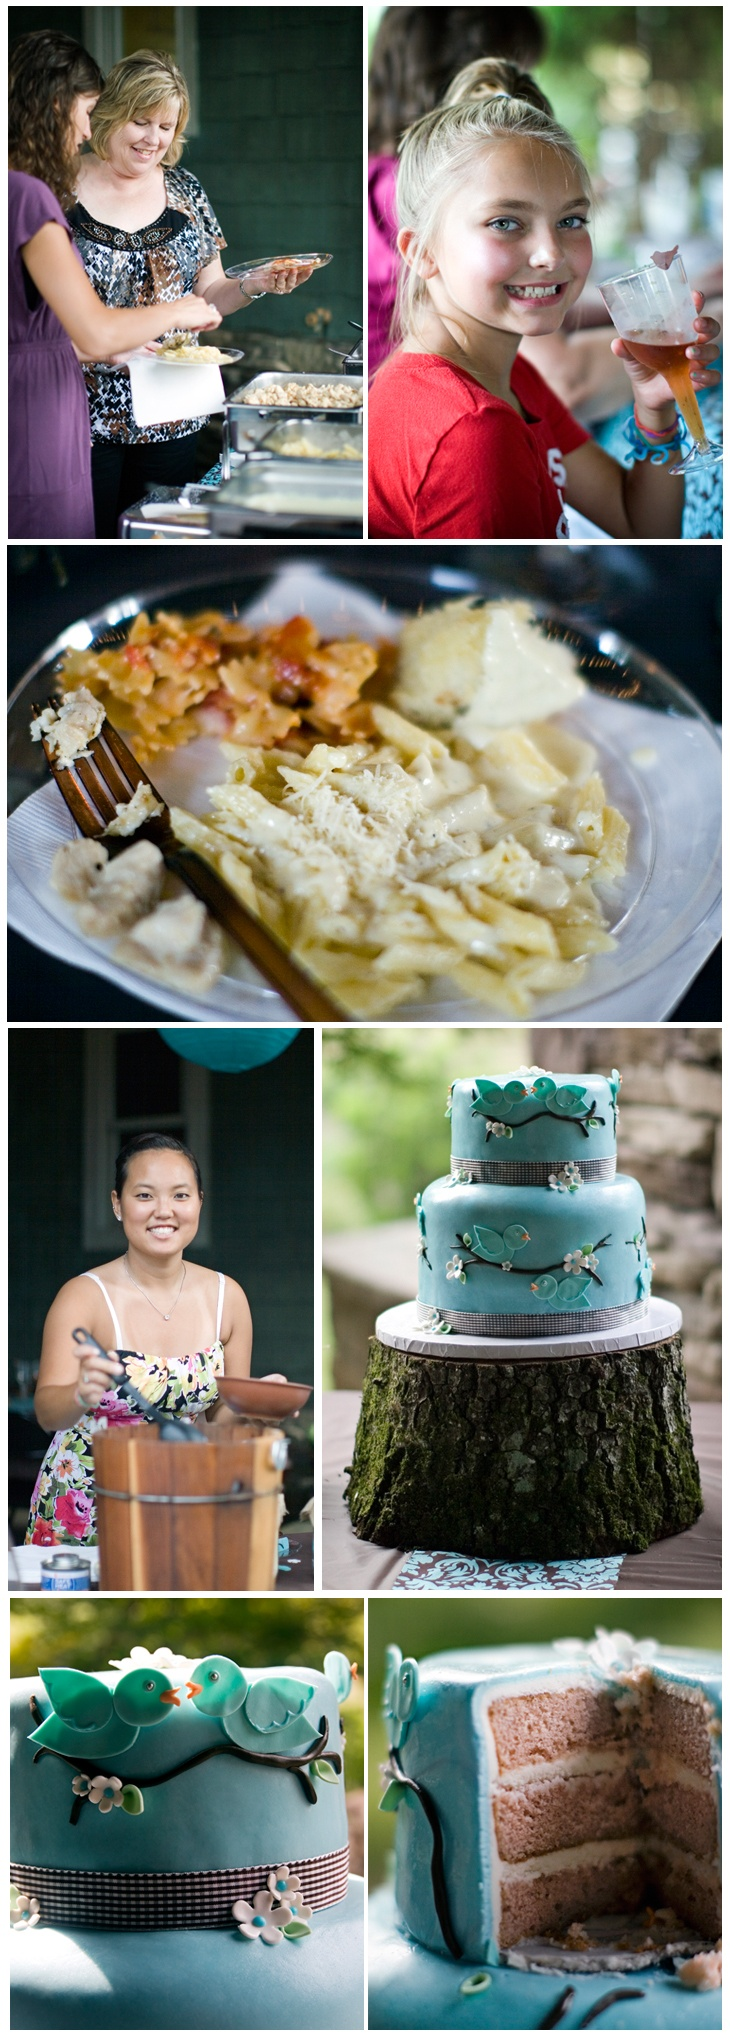 Love the idea of an outdoor baby shower! And love the cake too! :)